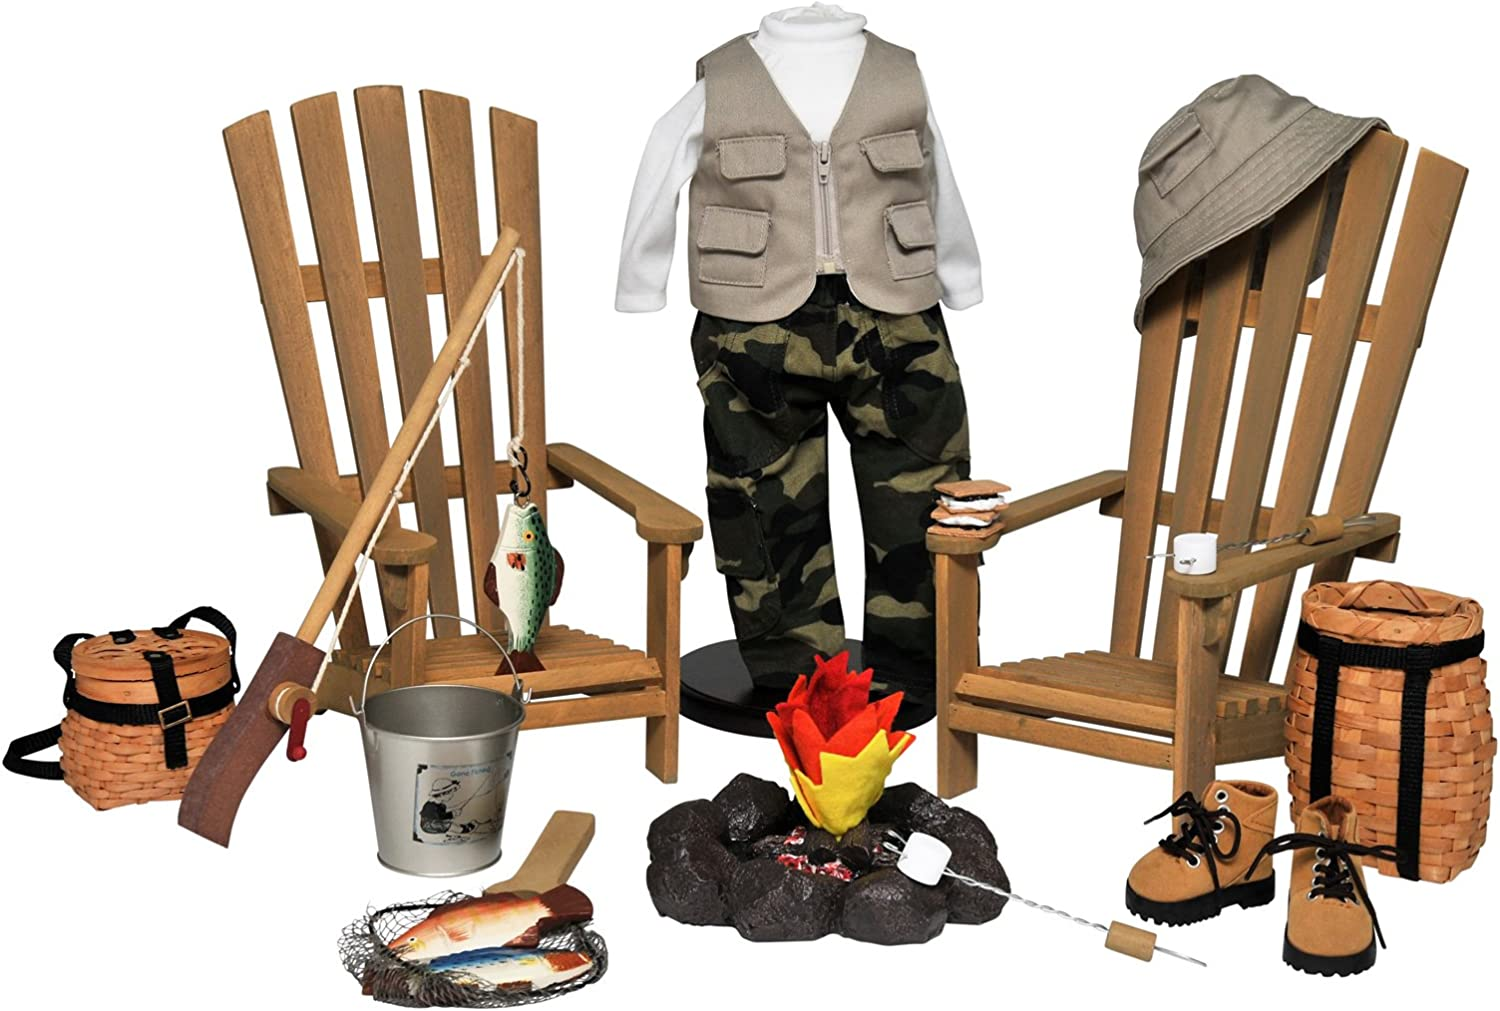 The Queen's Treasures Complete 18 in Doll Adirondack Outdoor Camping & Fishing Adventure 22 Piece Furniture, Accessory & Clothing Set. Fits American Girl